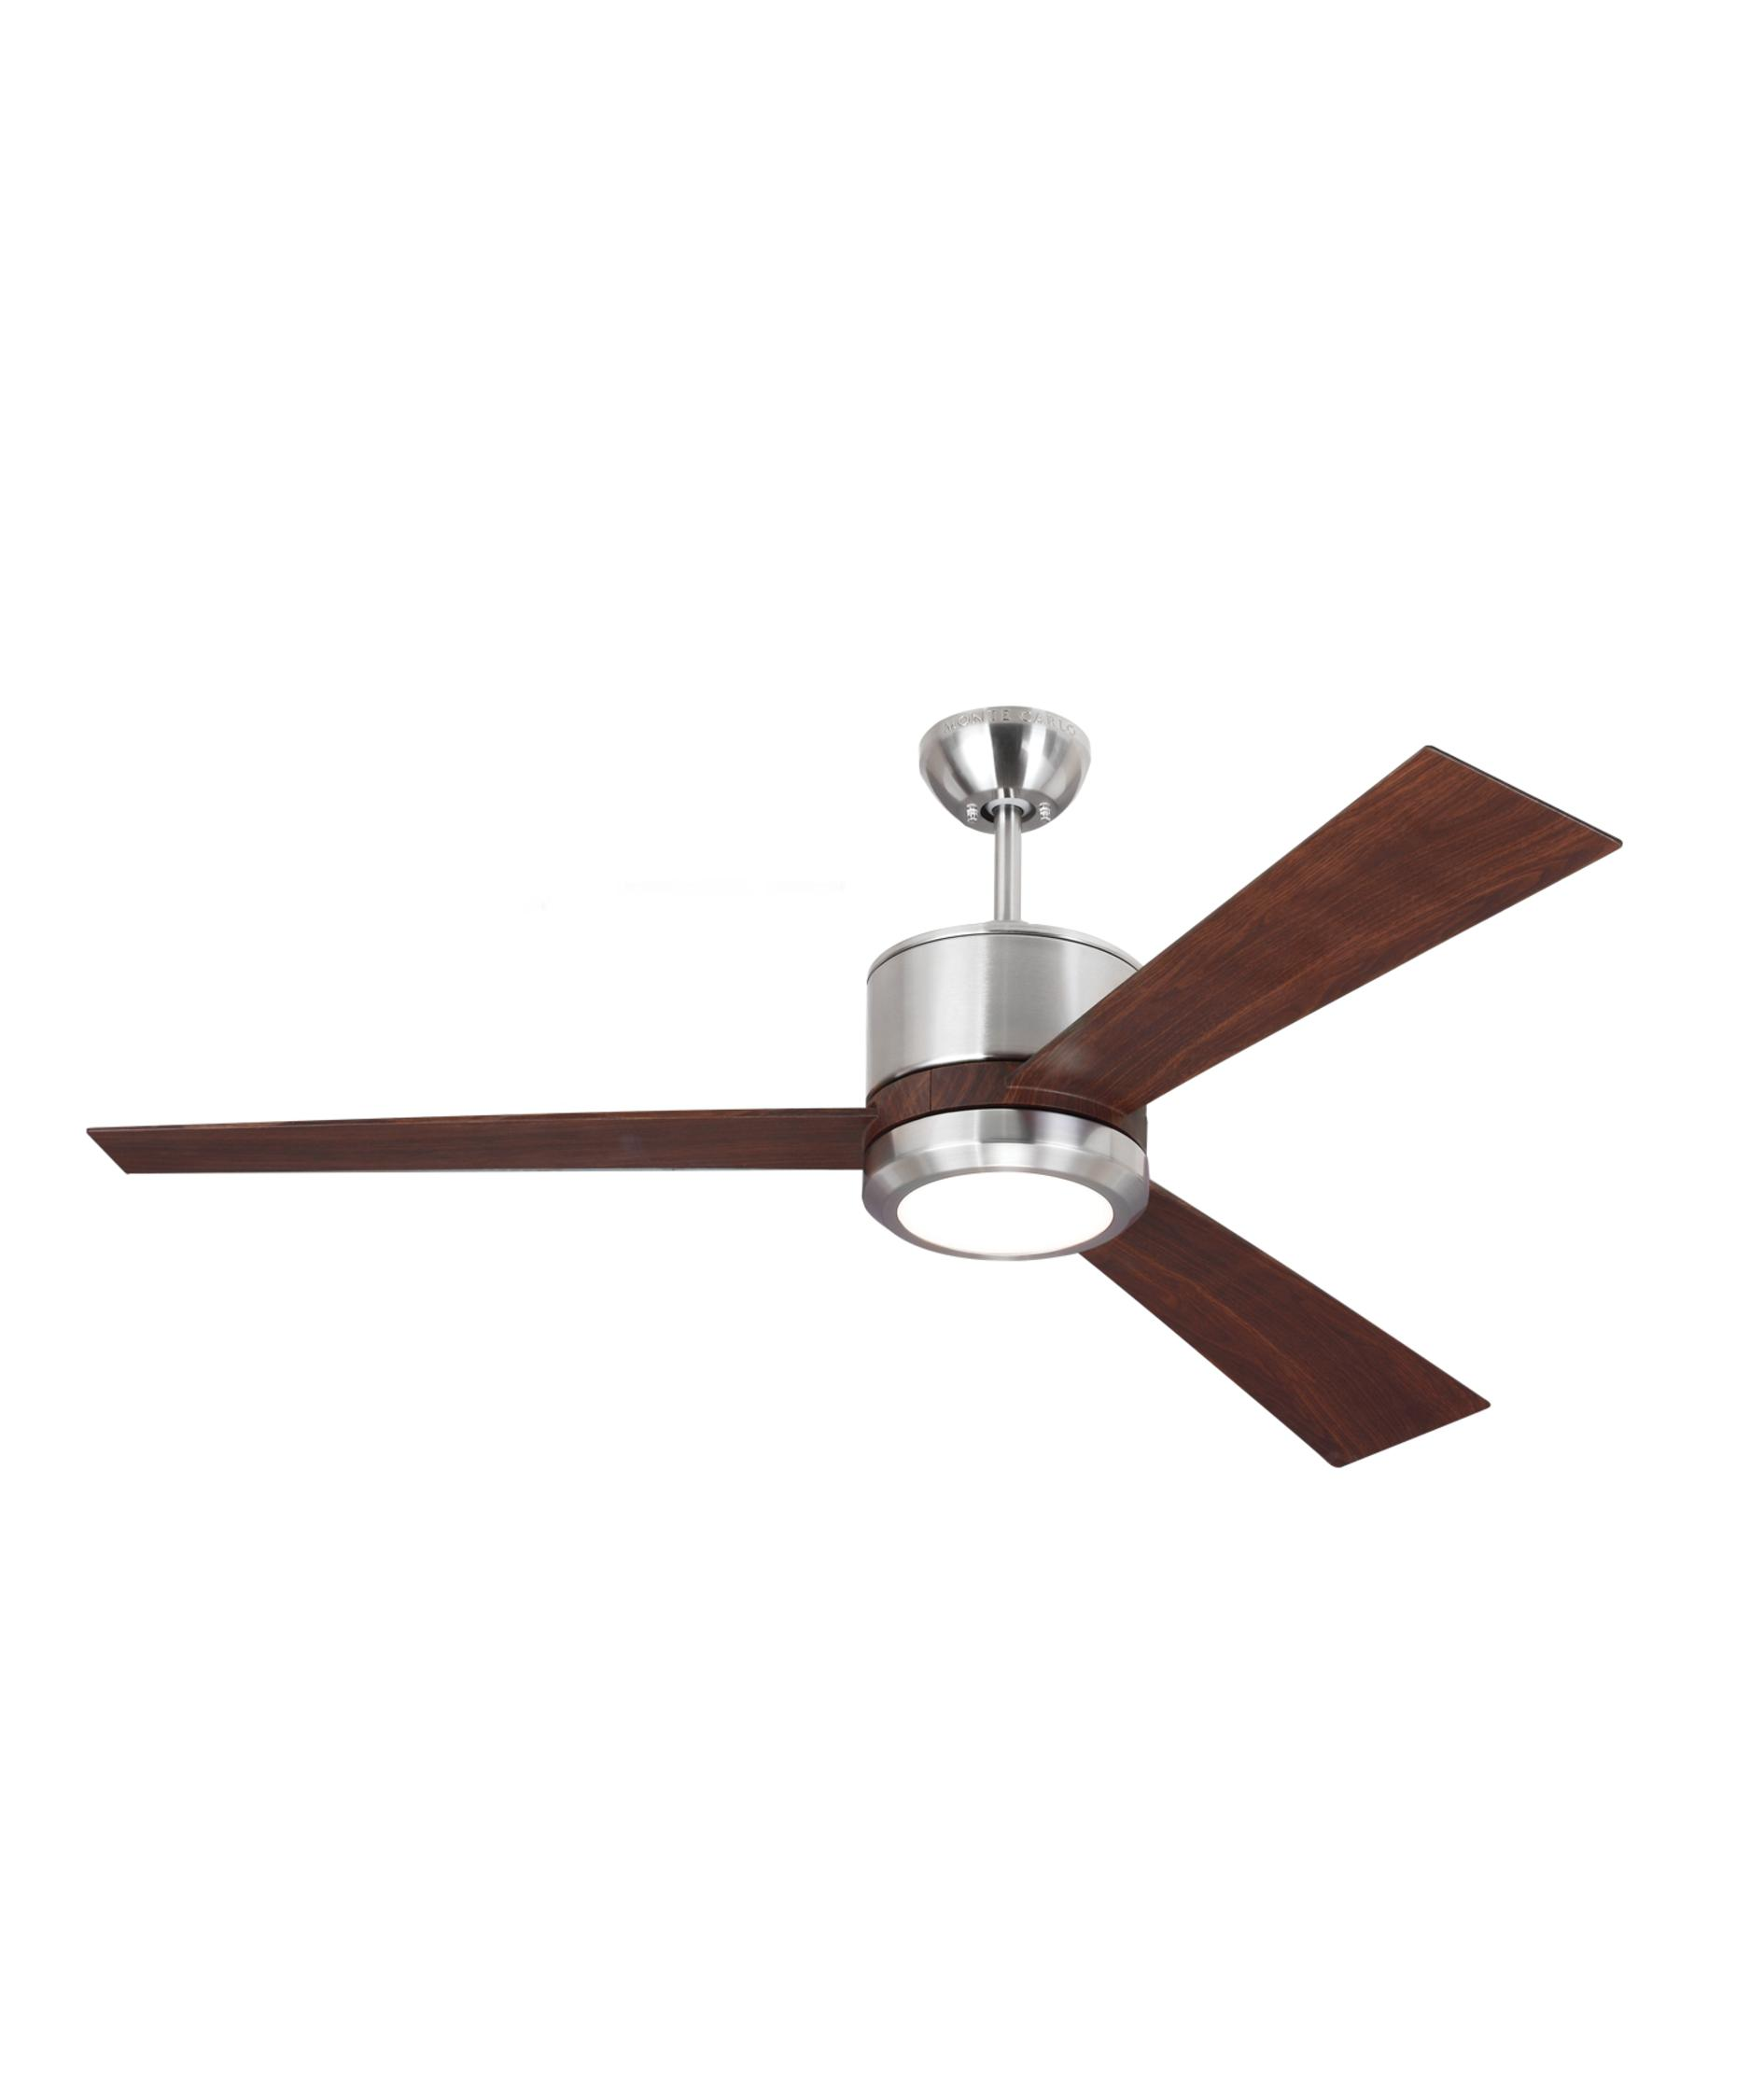 monte carlo vnr vision  inch  blade ceiling fan  capitol  - shown in brushed steel finish and frosted acrylic glass